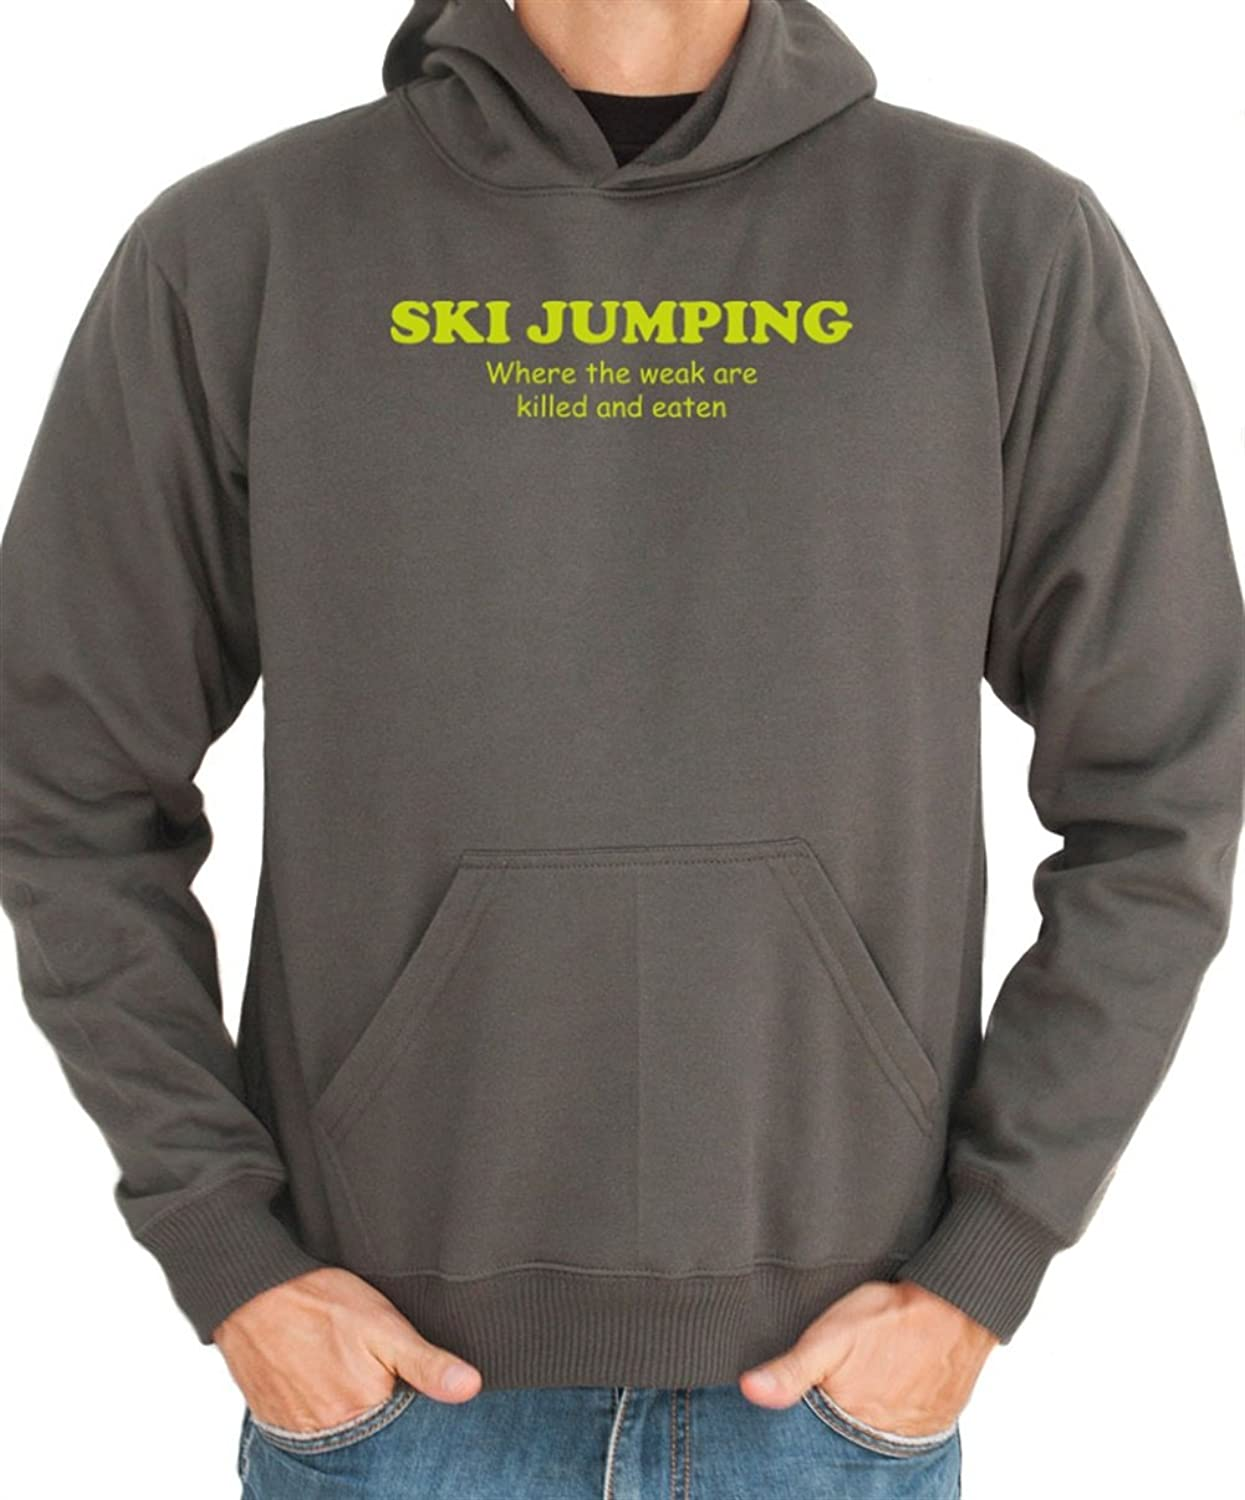 Ski Jumping WHERE THE WEAK ARE KILLED AND EATEN Hoodie